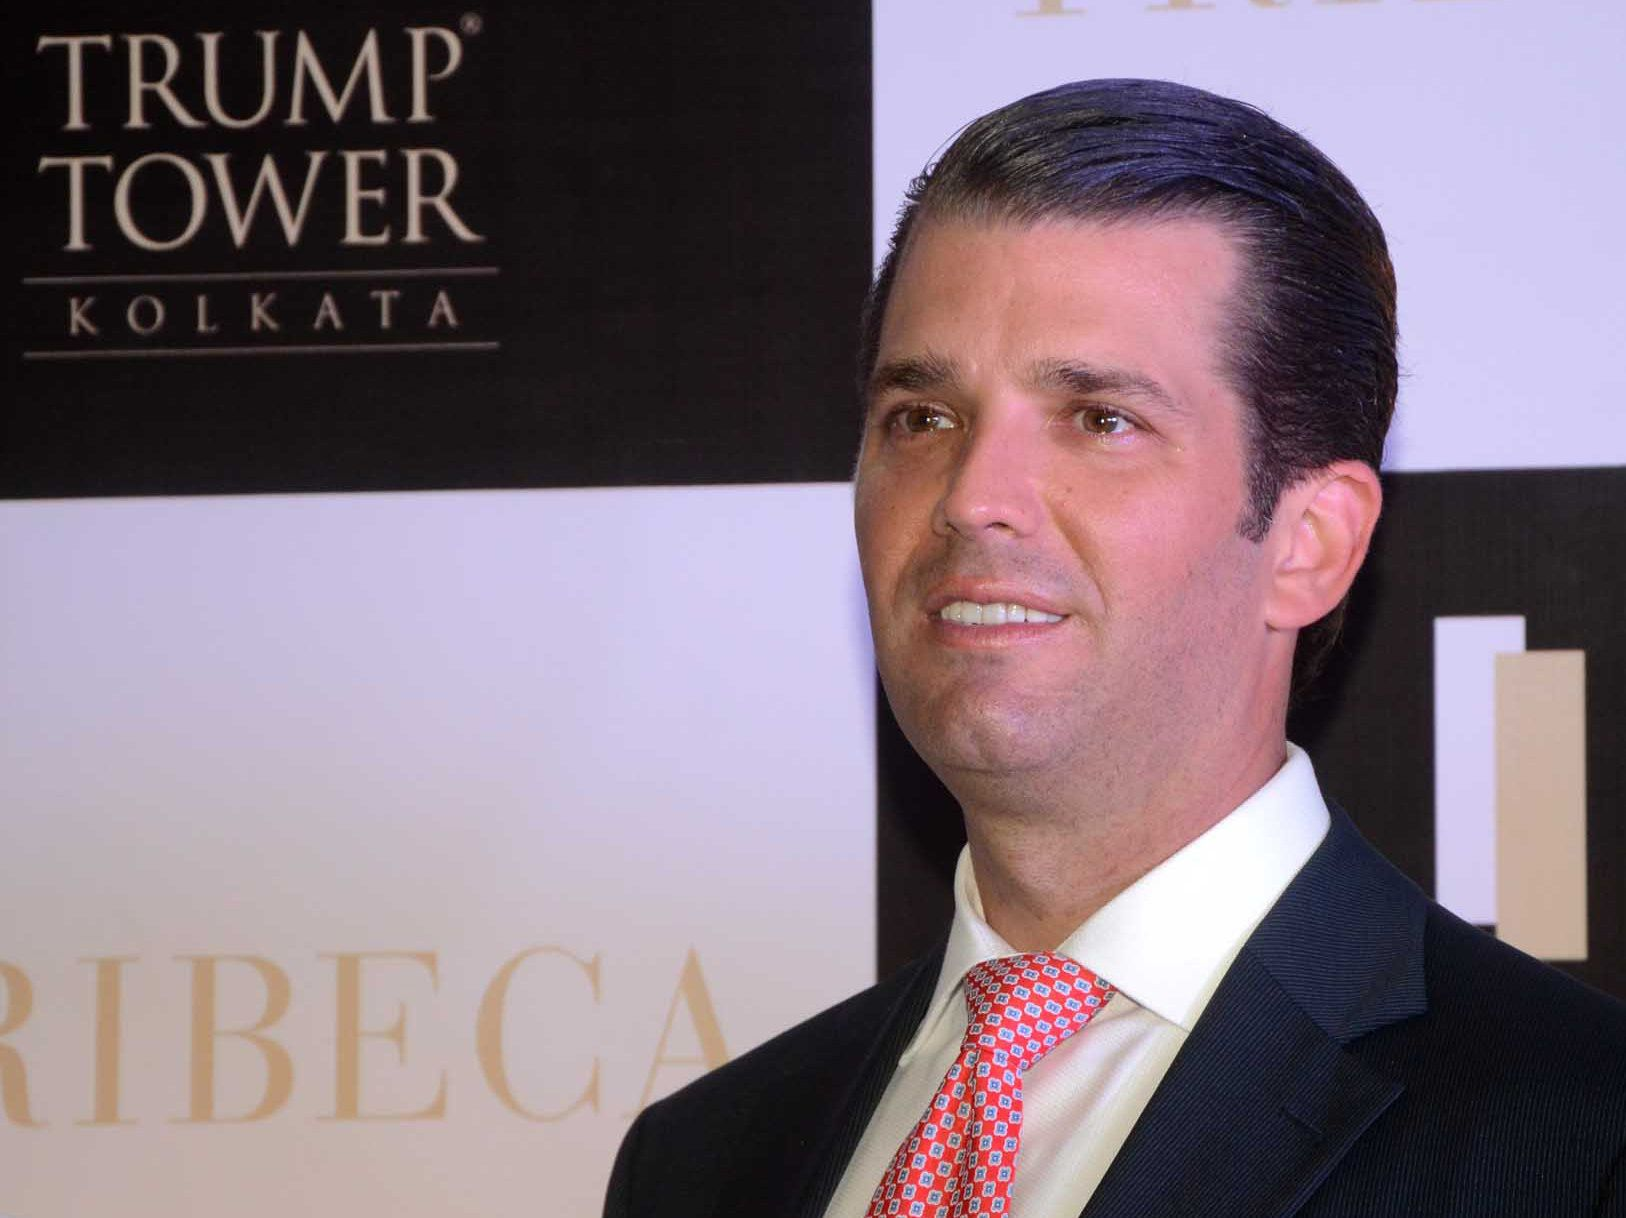 Donald Trump Jr at photo session after visit  Trump Tower, a luxury apartment building, ahead of the visit of Donald Trump Jr on February 21,2018 in Kolkata,India. (Photo by Debajyoti Chakraborty/NurPhoto via Getty Images)